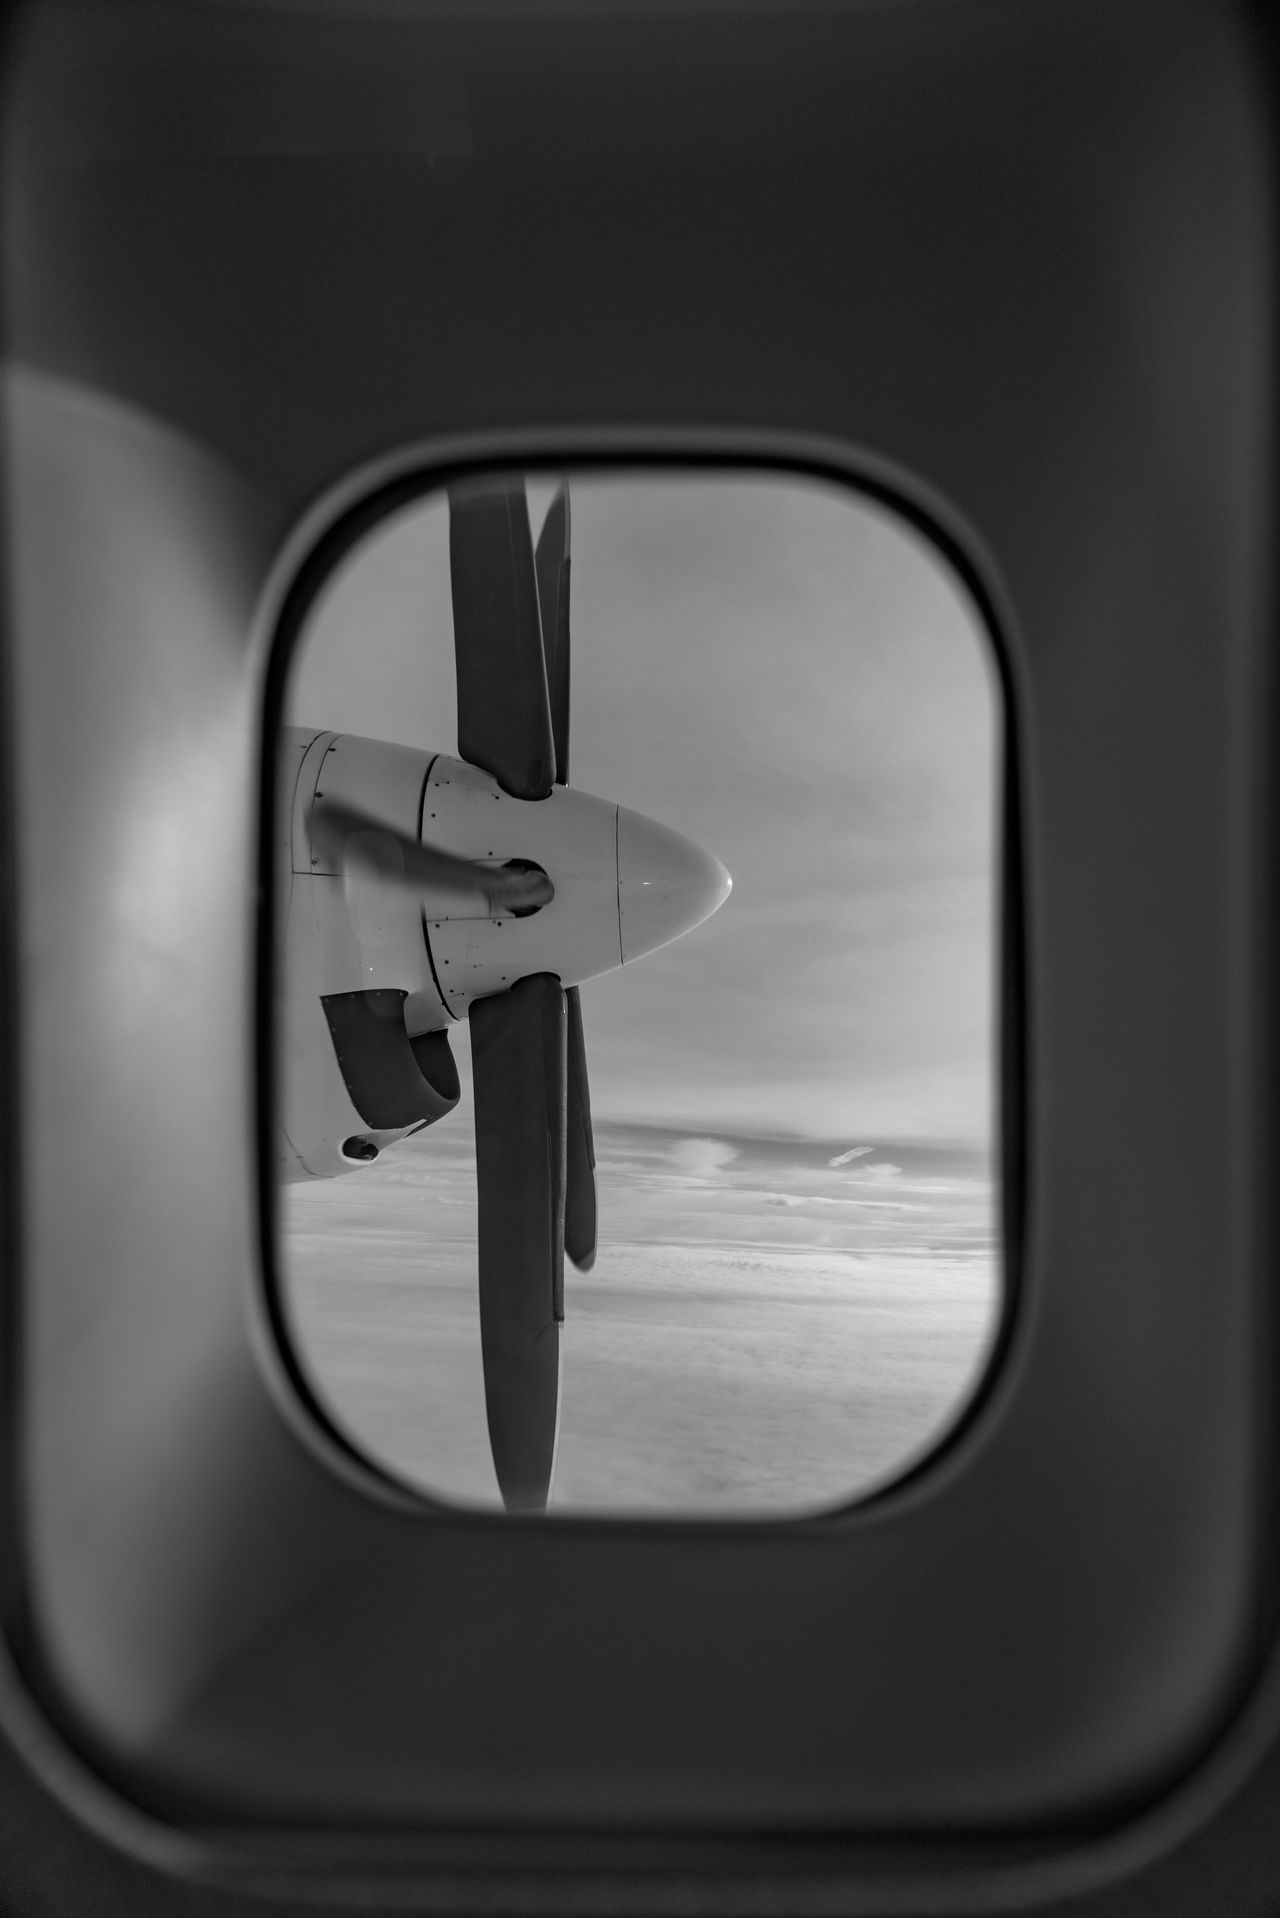 Flying over the North Sea Airplane Black And White Close-up Day Flying Fokker 50 Indoors  Looking Out No People Sky Transportation Turbo Propeller Water Window Let's Go. Together.